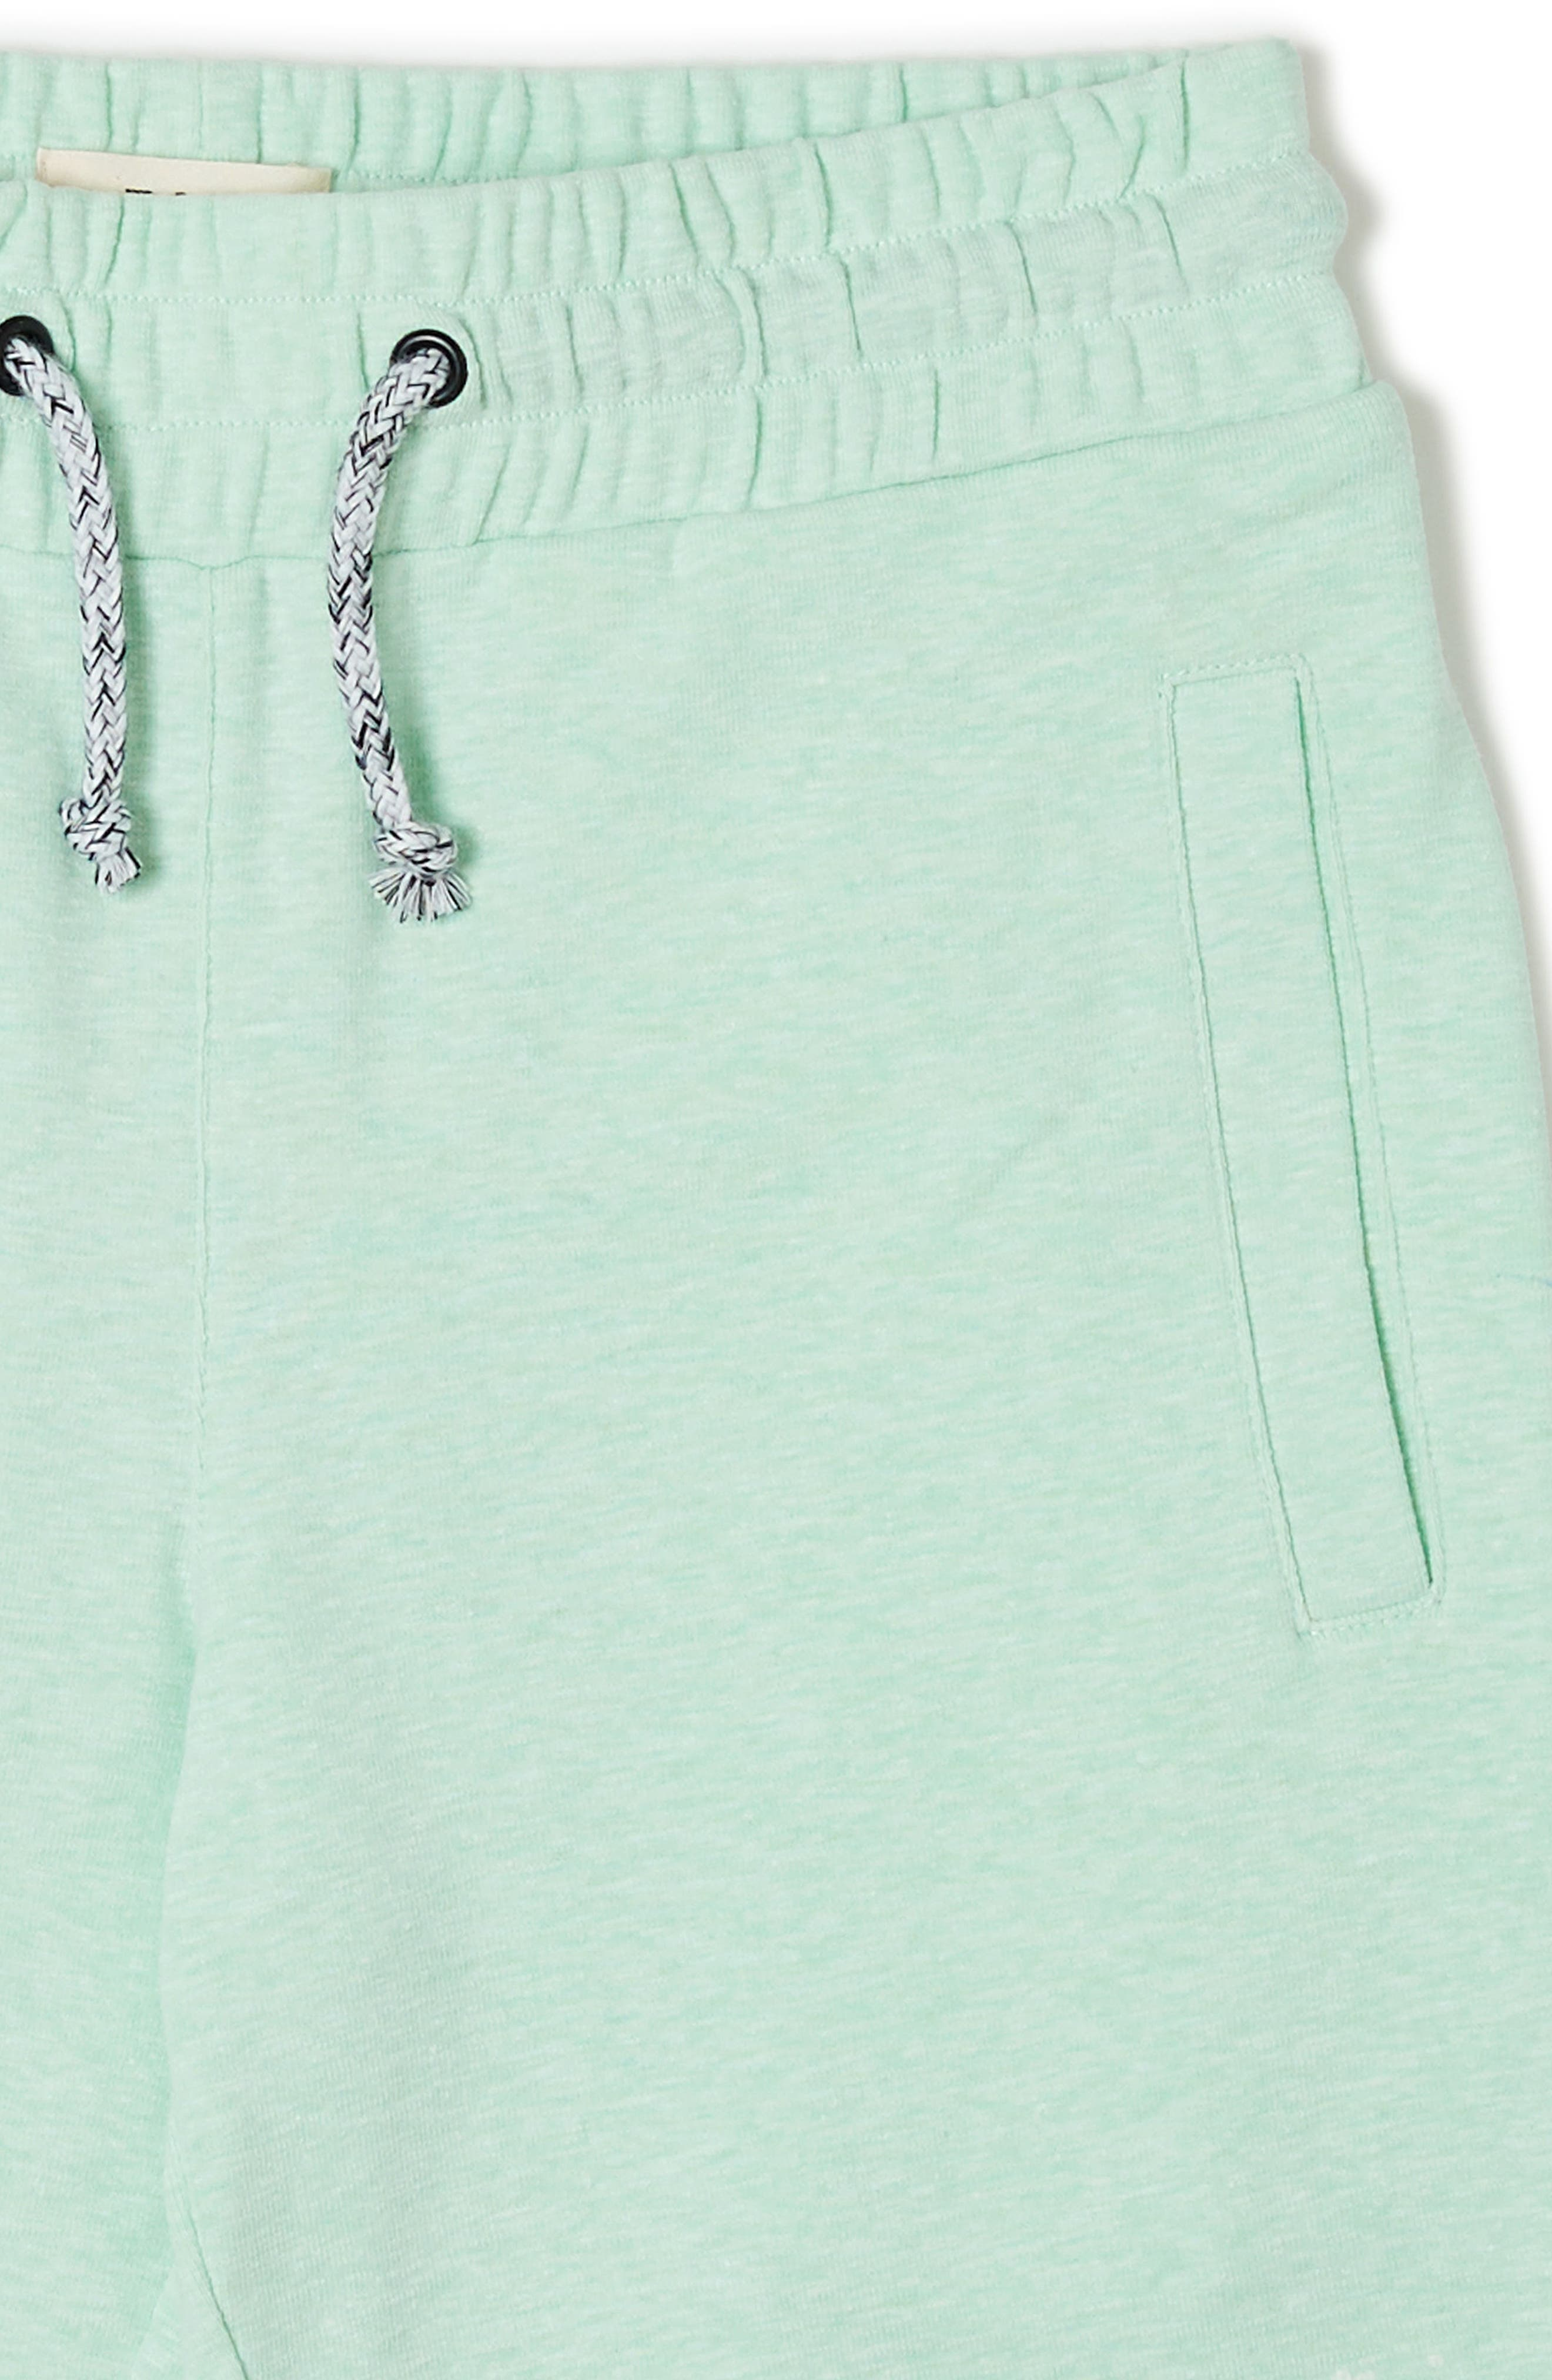 Ranger Knit Shorts,                             Alternate thumbnail 3, color,                             Green